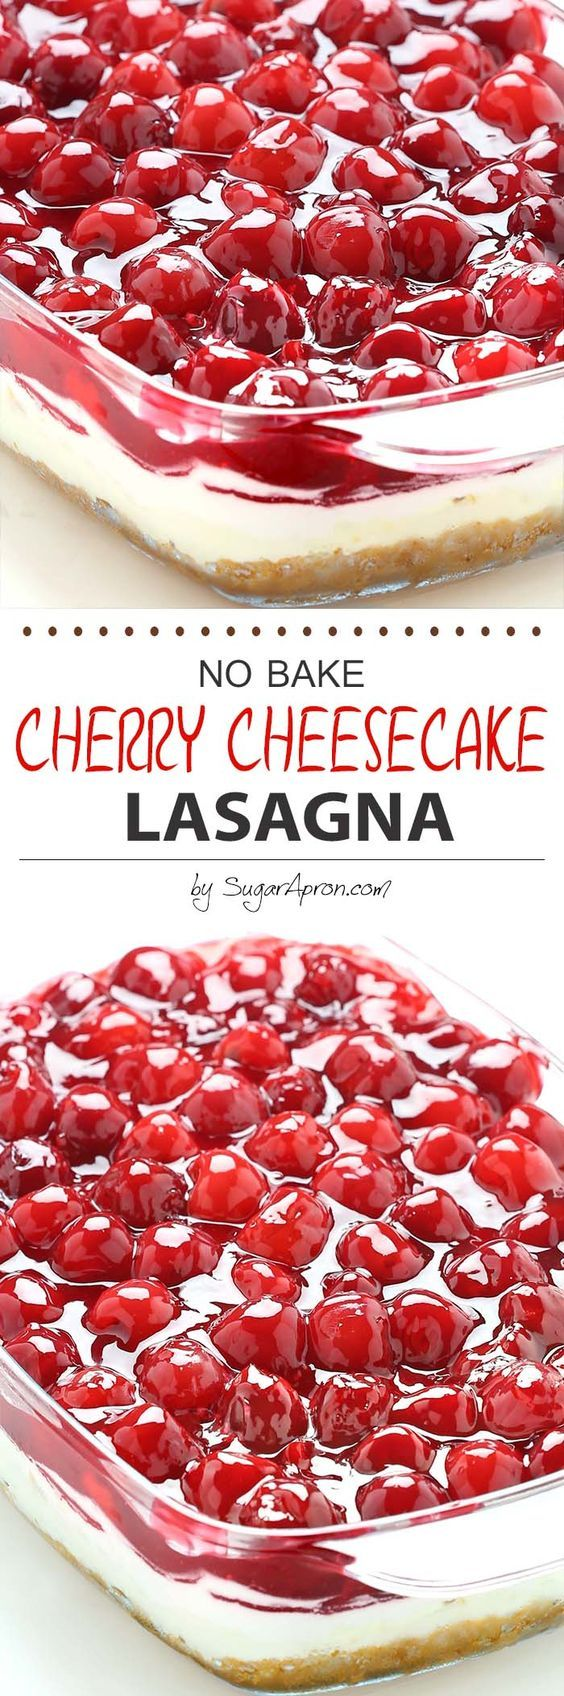 Dessert lasagna with graham cracker crust cream cheese filling pecans and cherry pie topping.